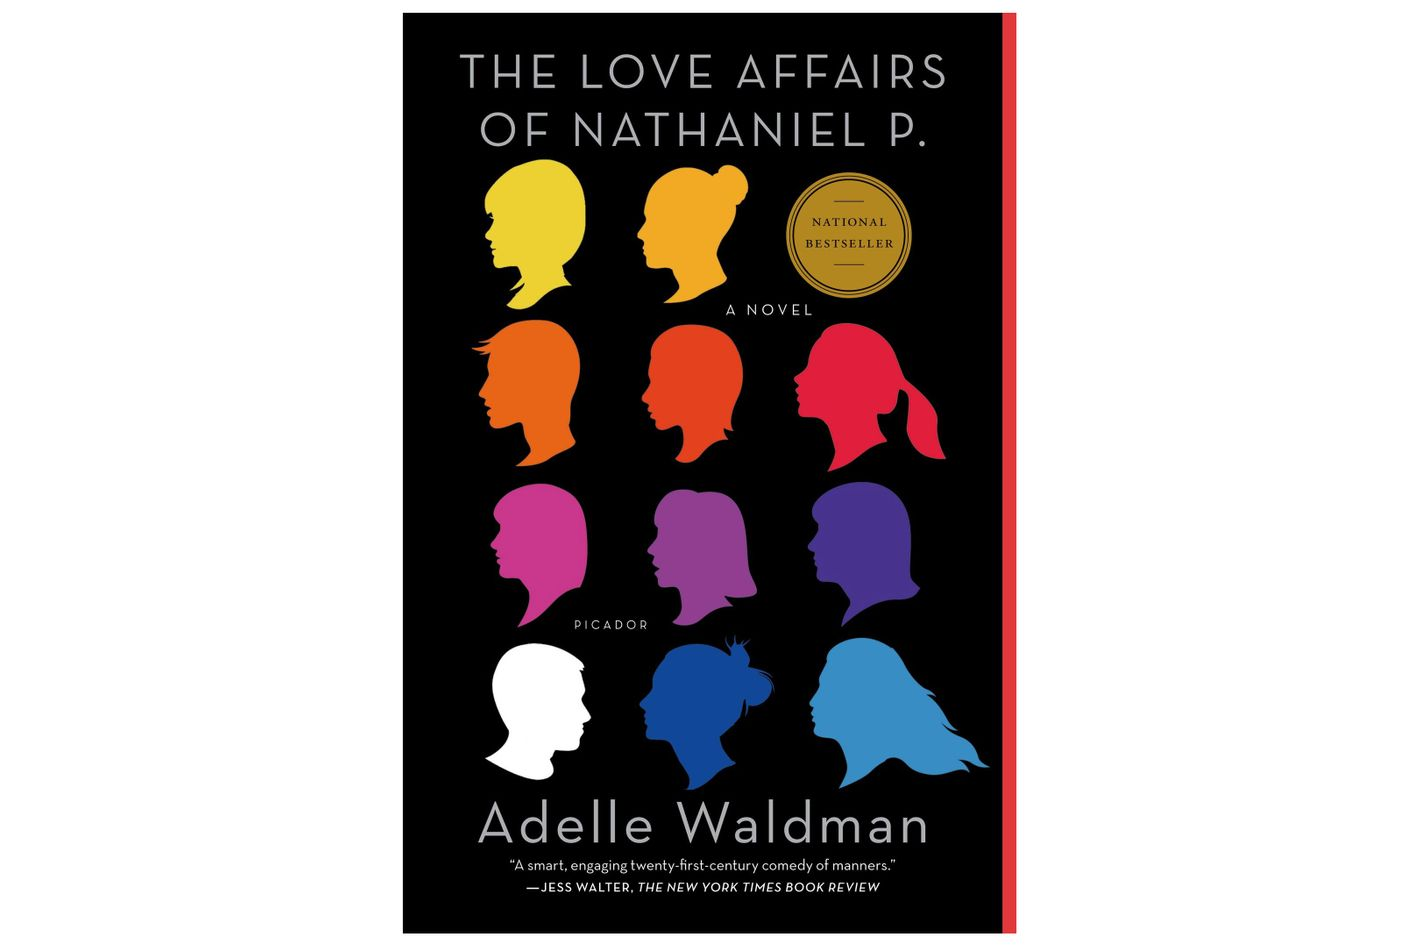 """The Love Affairs of Nathaniel P."" by Adelle Waldman"